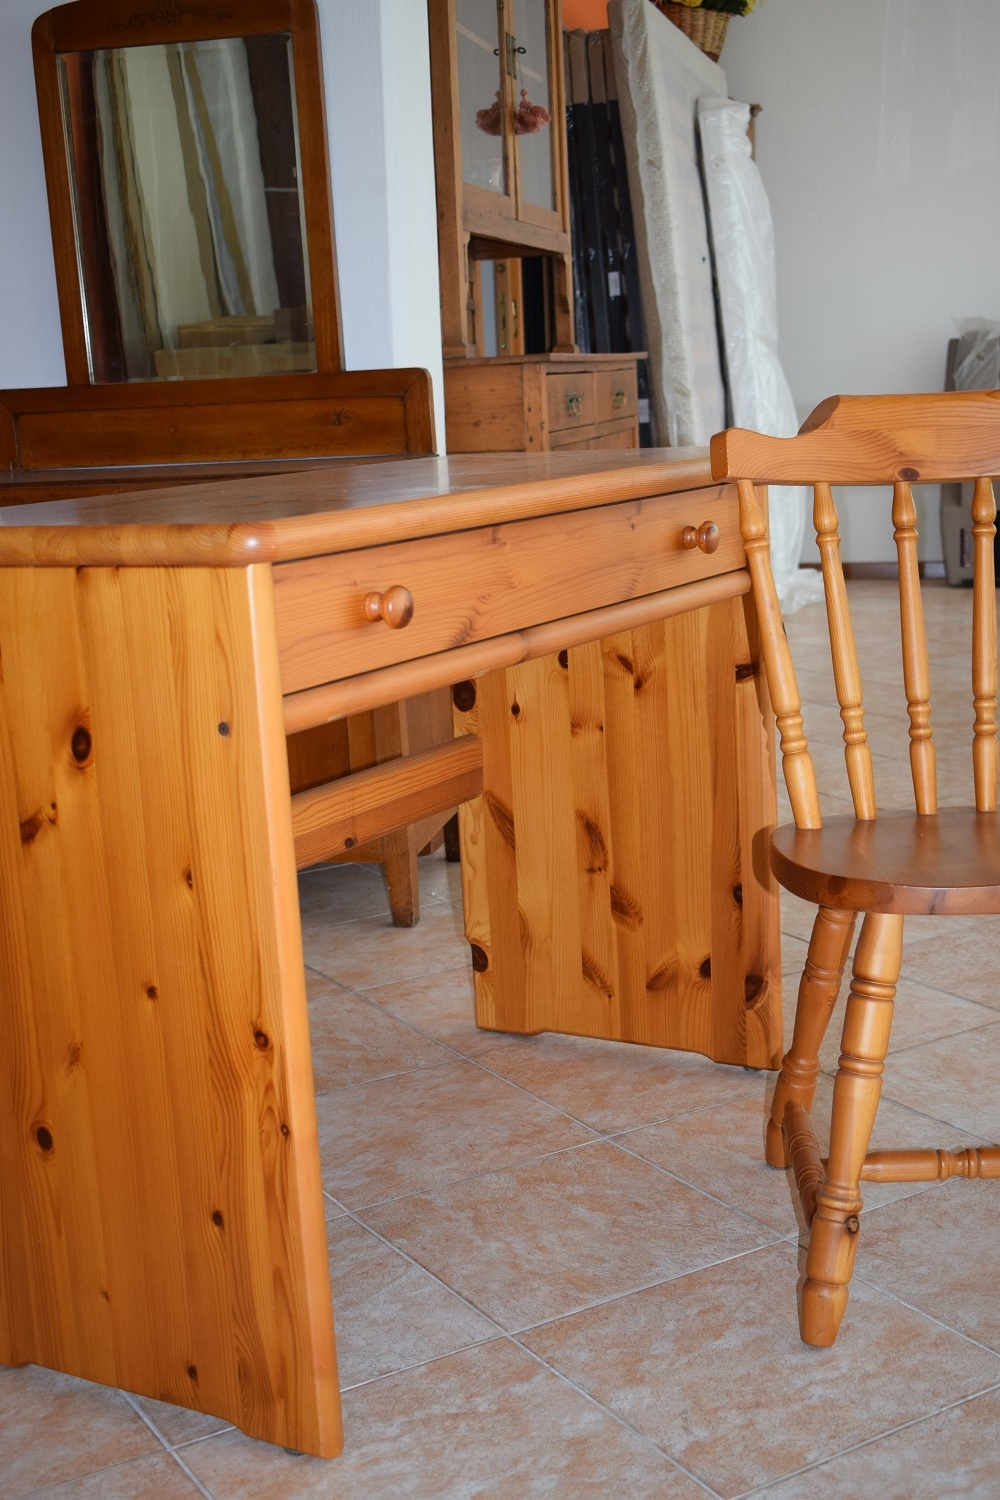 Latest crivania in pino rustica in legno massello con for Scrivania legno